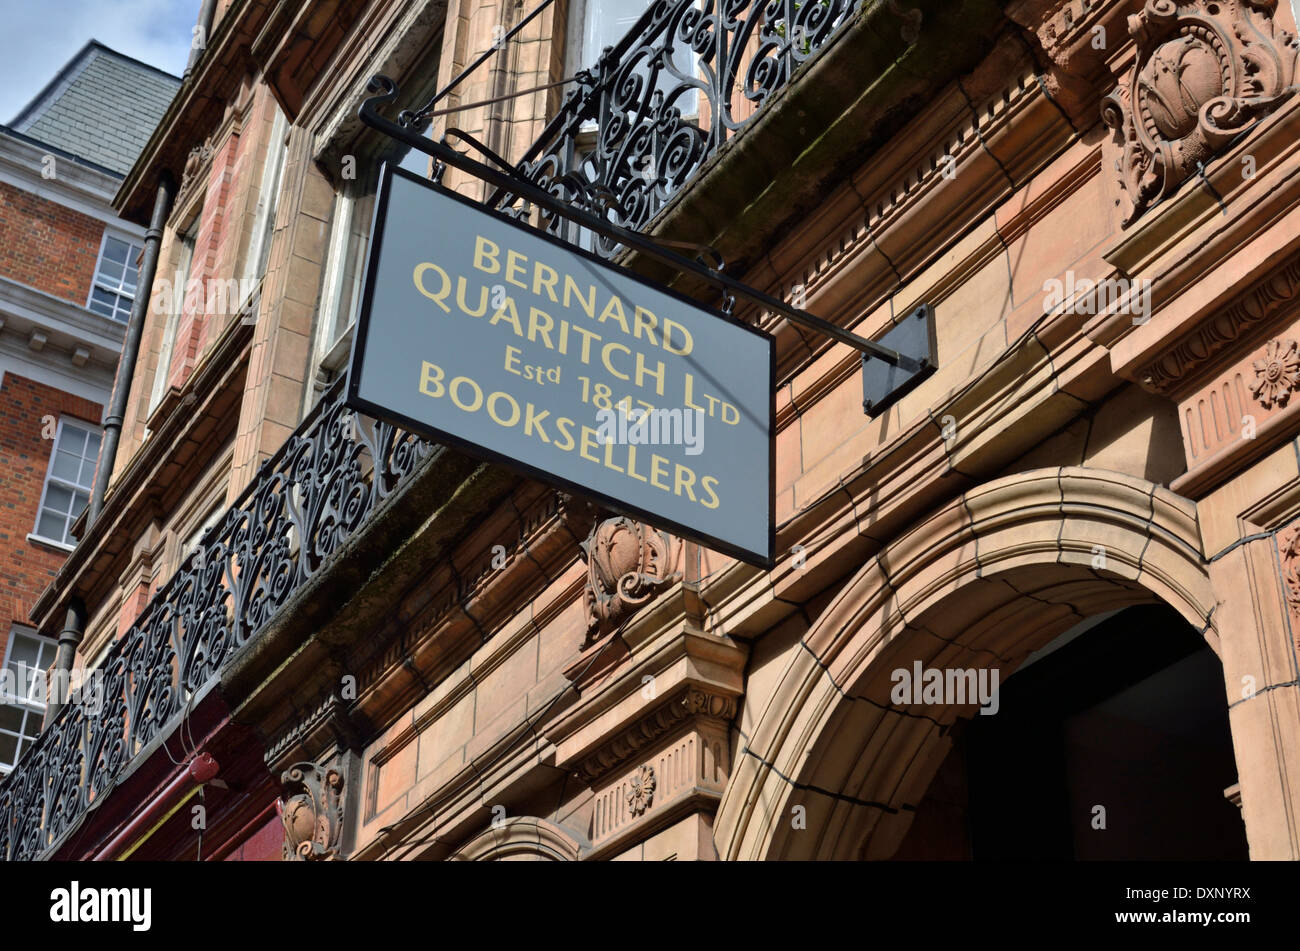 Bernard Quaritch Limited Booksellers in Mayfair, London, UK. - Stock Image